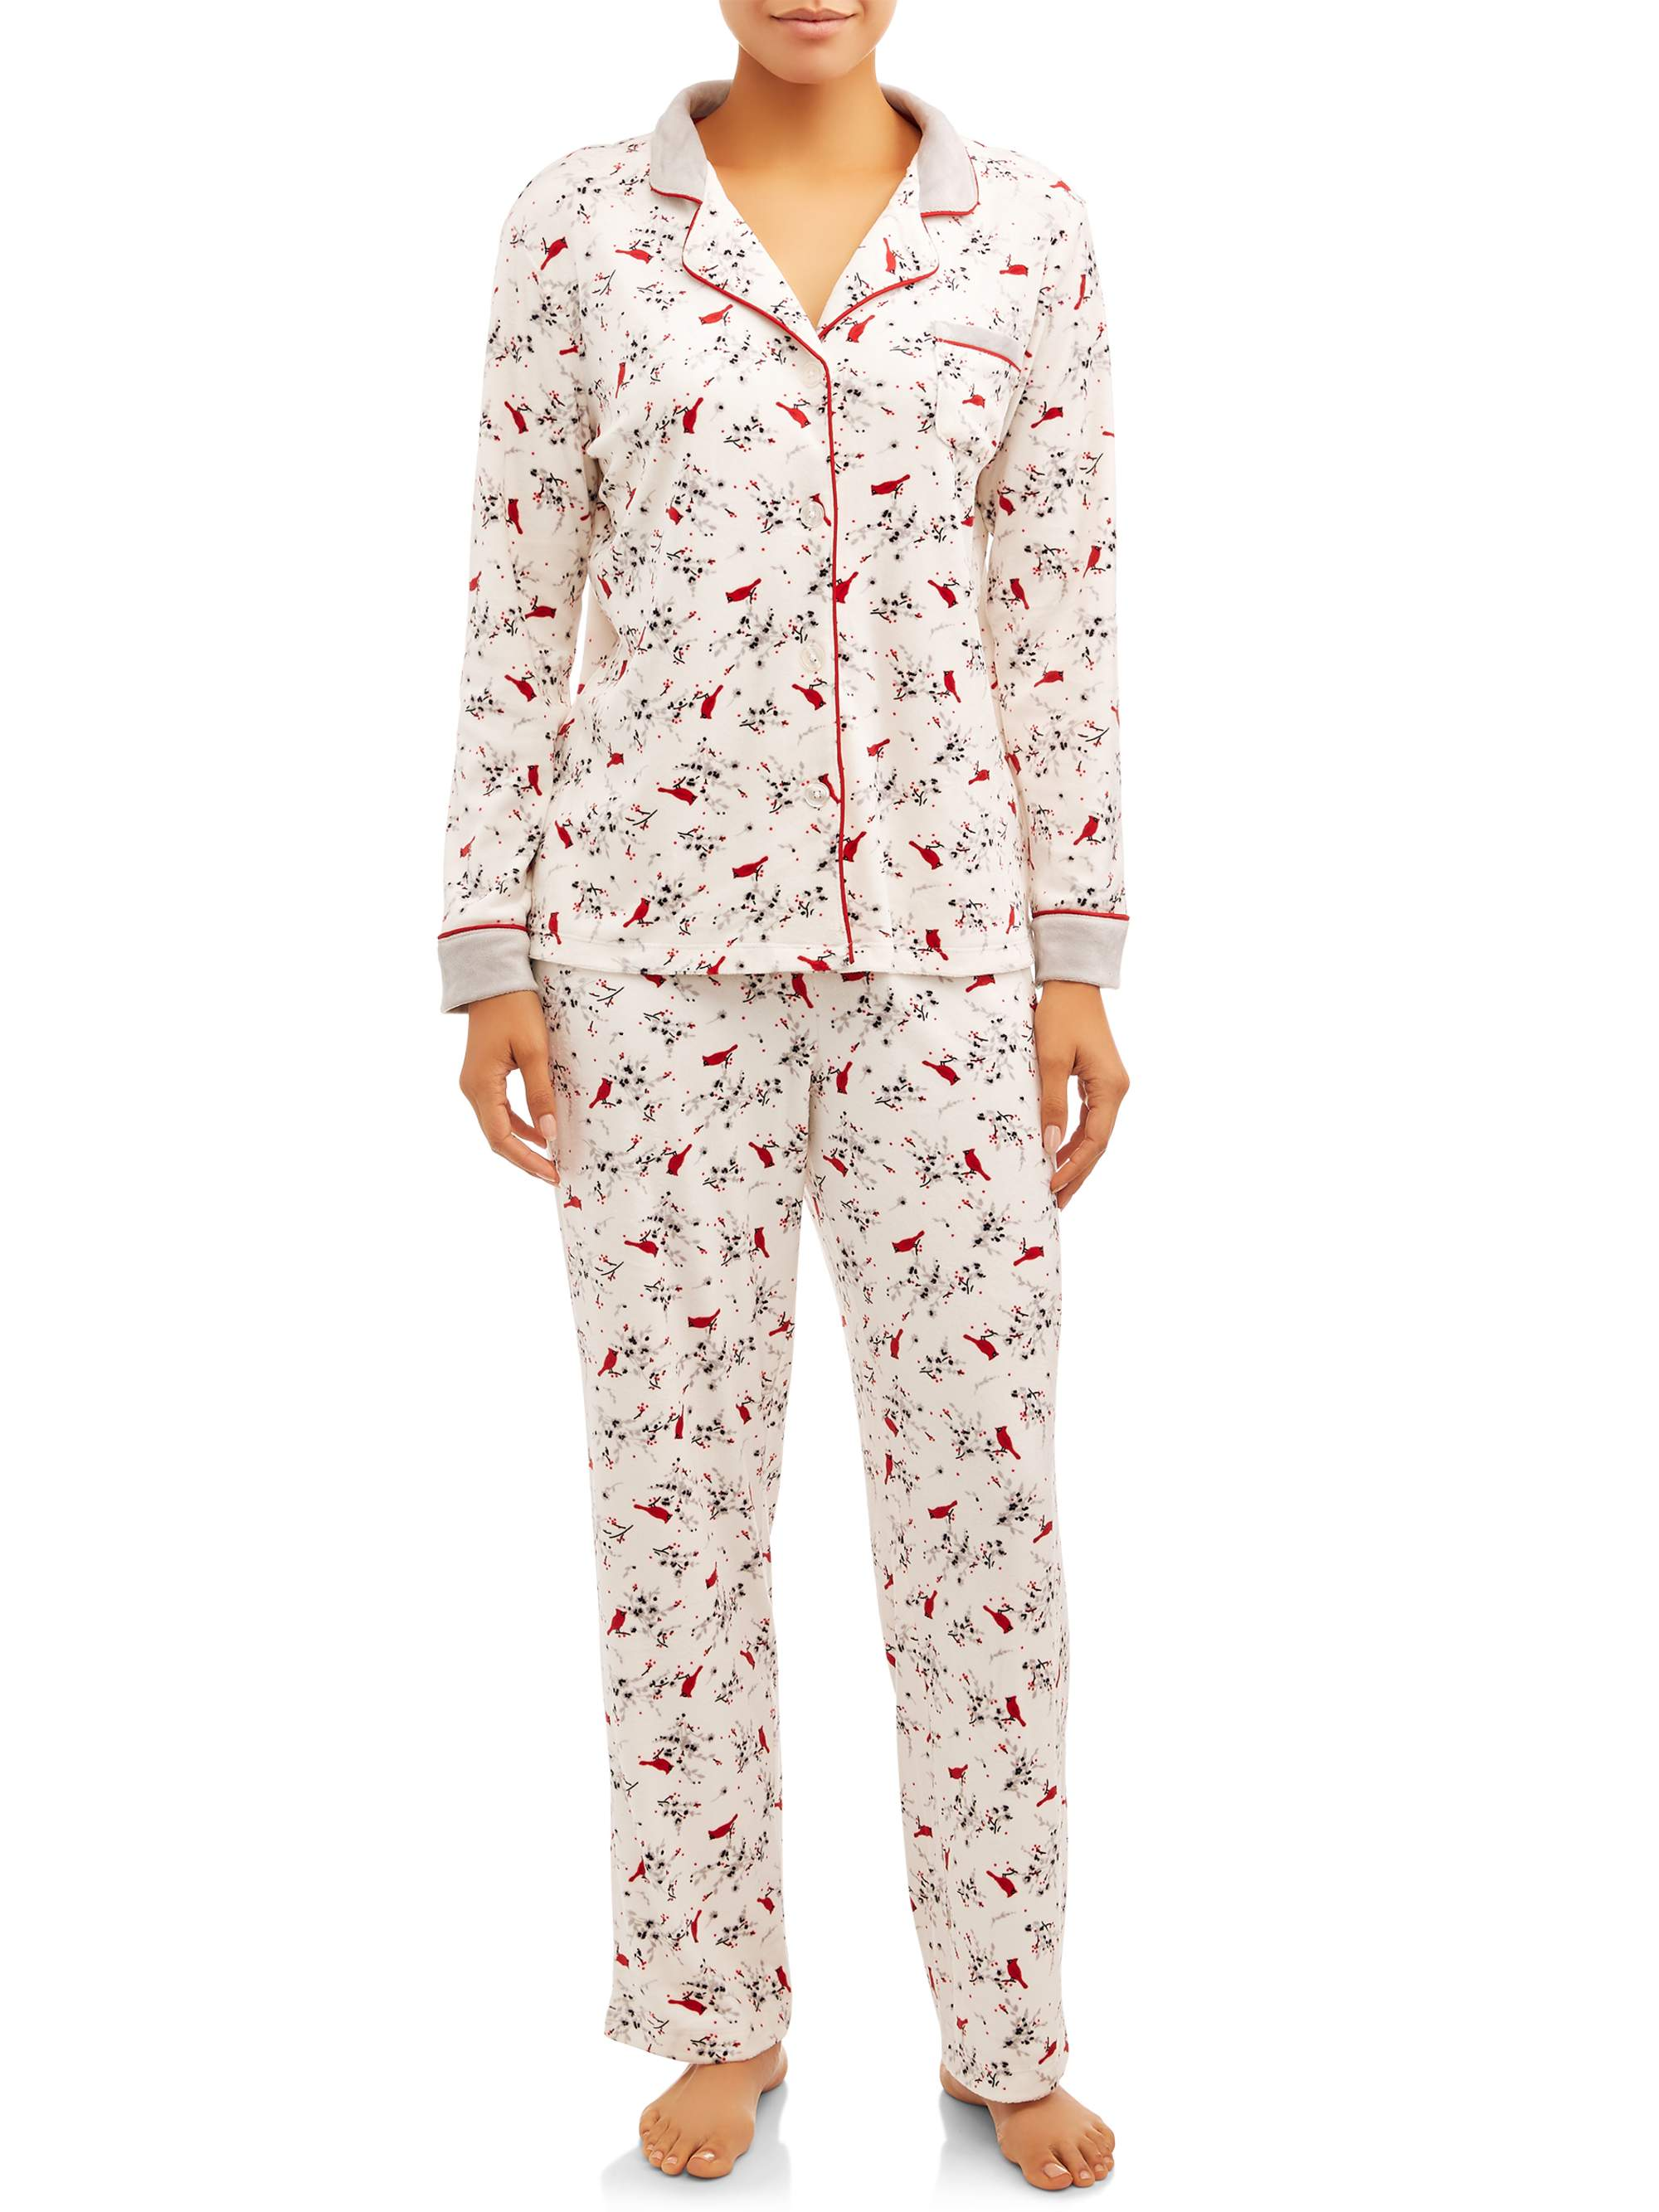 Charter Club Womens Button Down Flannel Pajama Set Rose Garden Floral